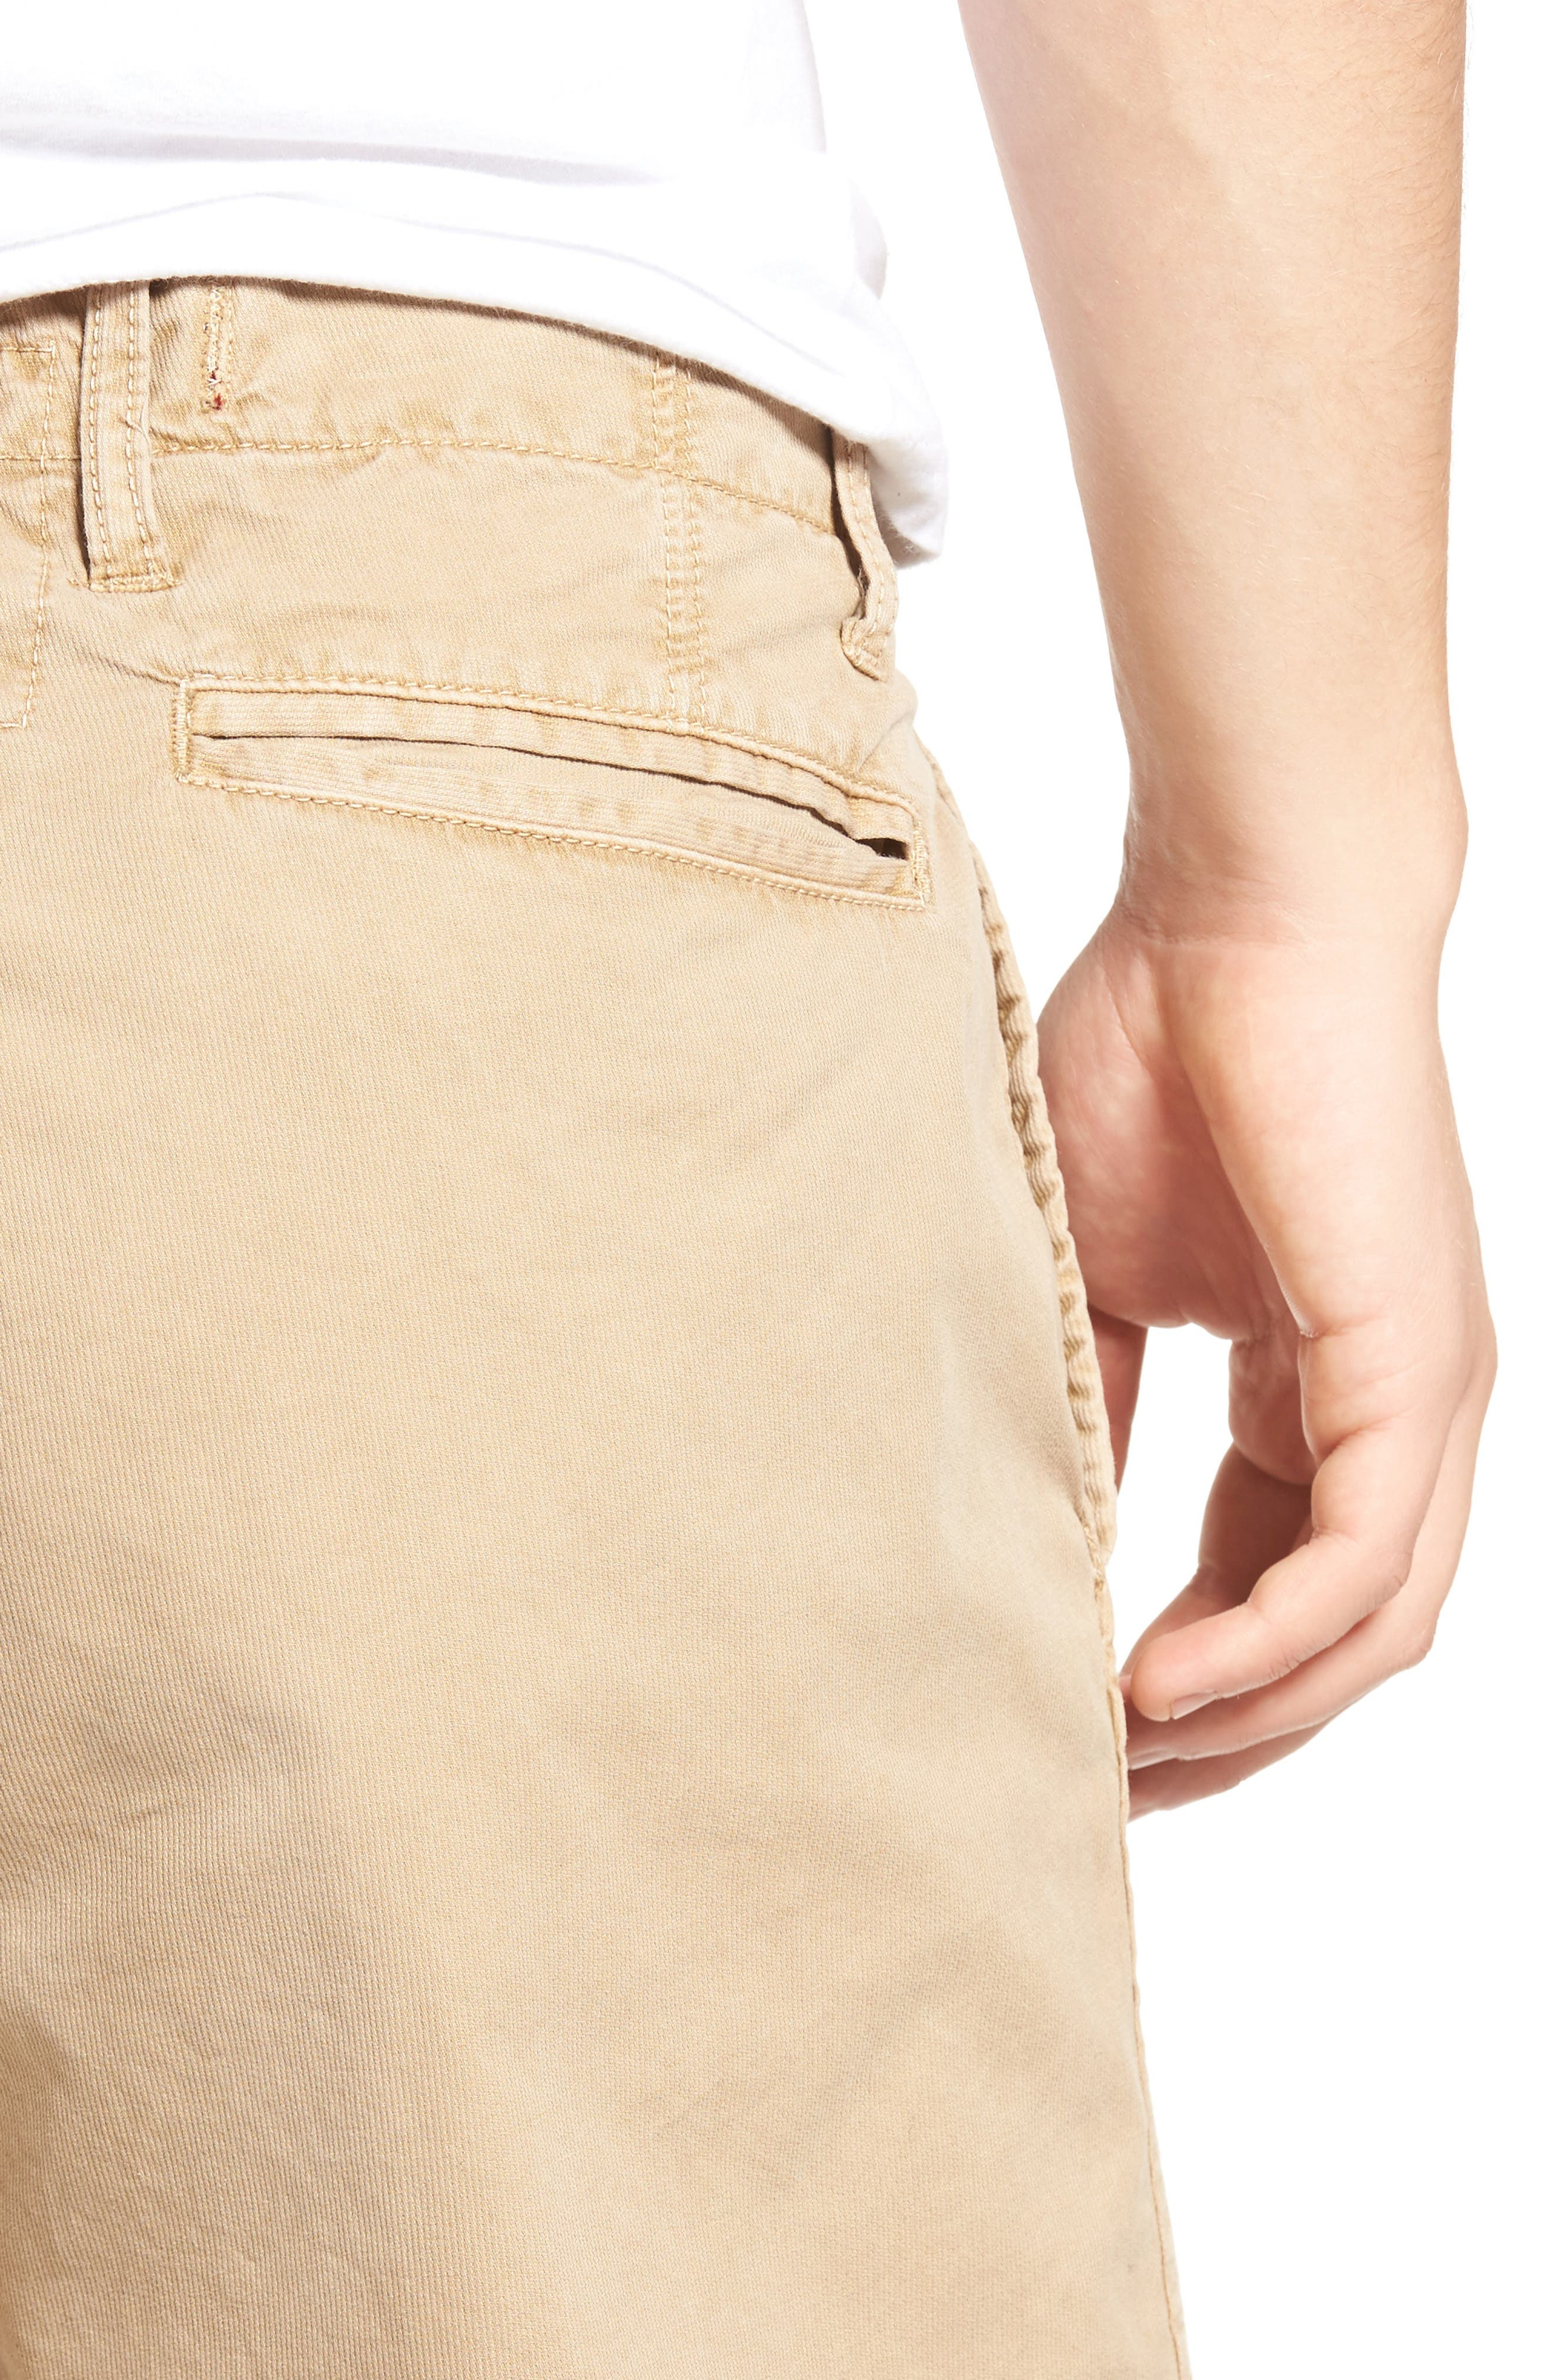 St. Martin Bedford Cord Shorts,                             Alternate thumbnail 10, color,